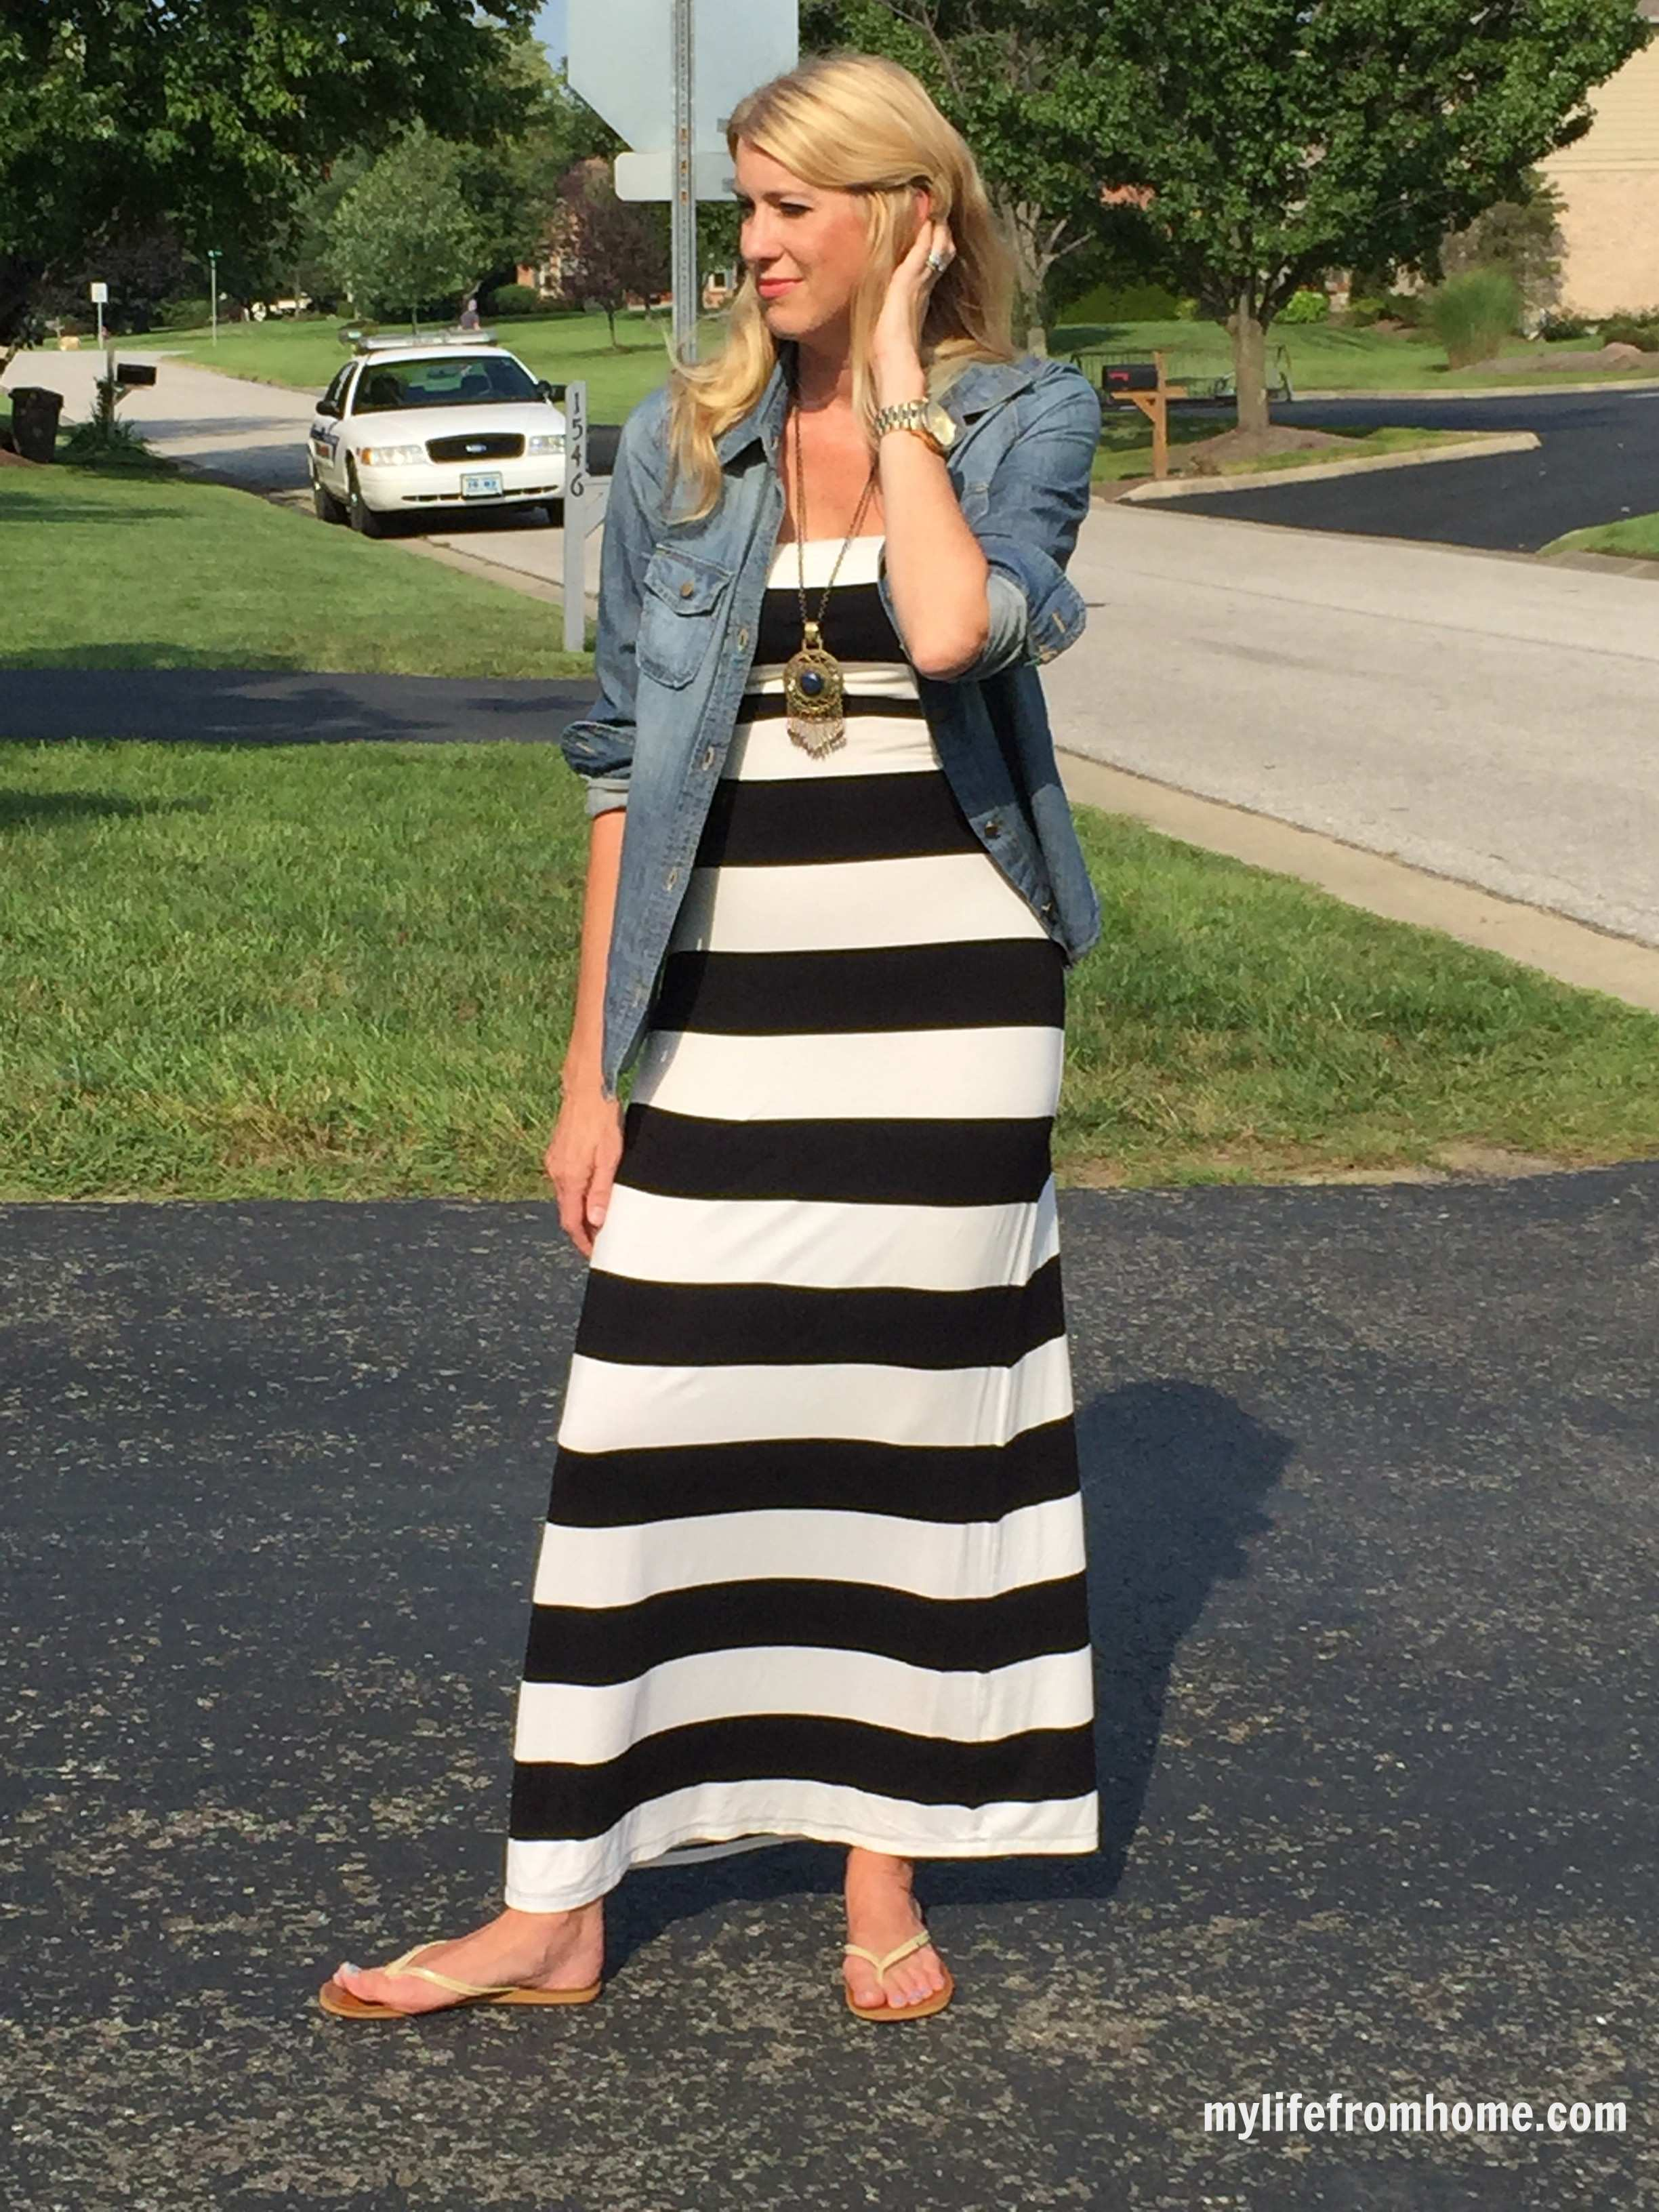 Denim Shirt over a Maxi Dress by www.mylifefromhome.com